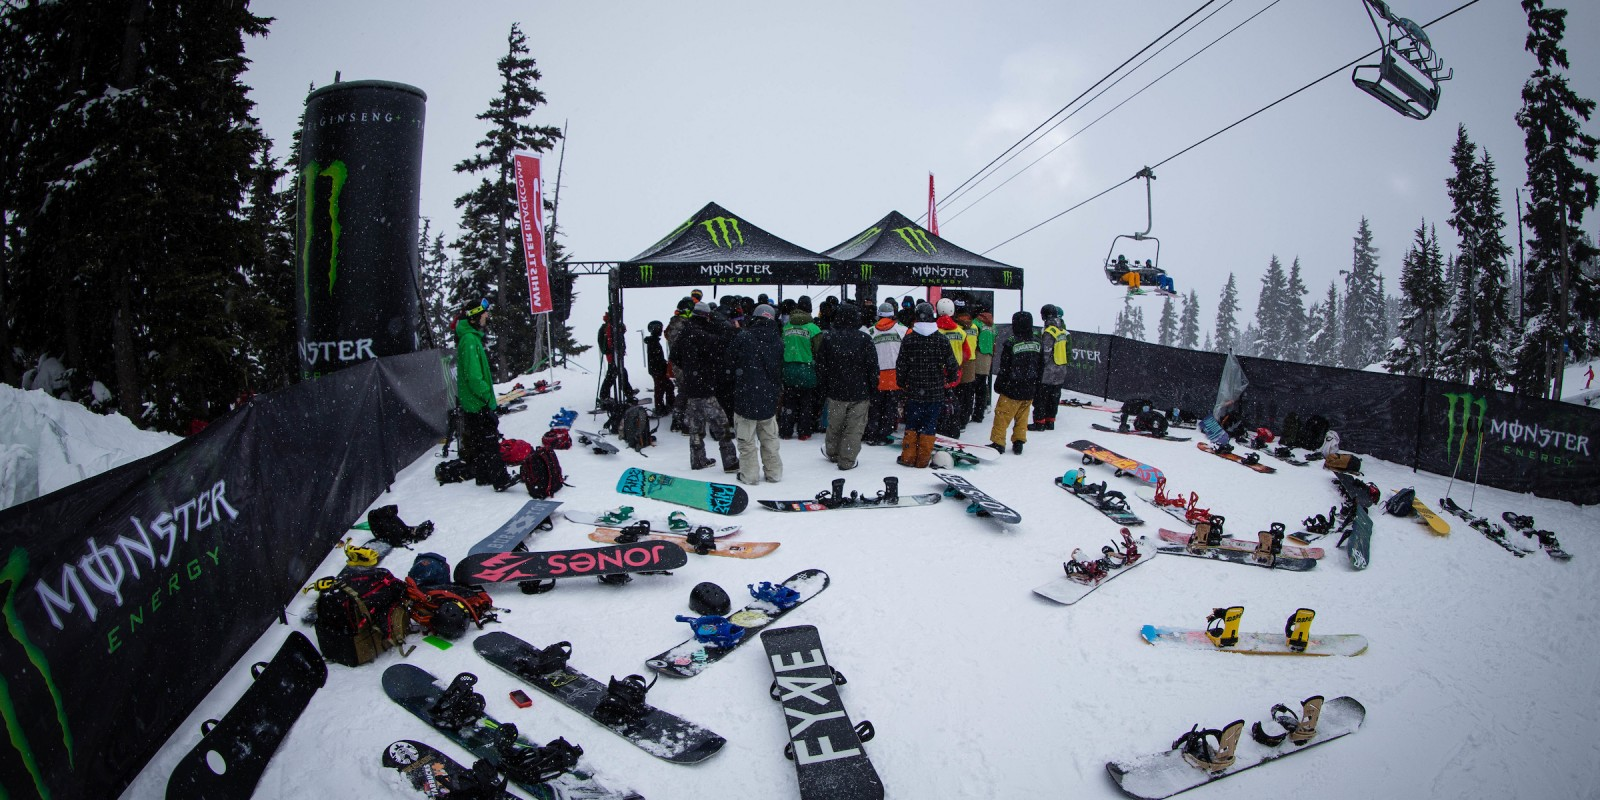 Some action and Ambient shots from the 2017 Boarderstyle Finals in Whistler, BC